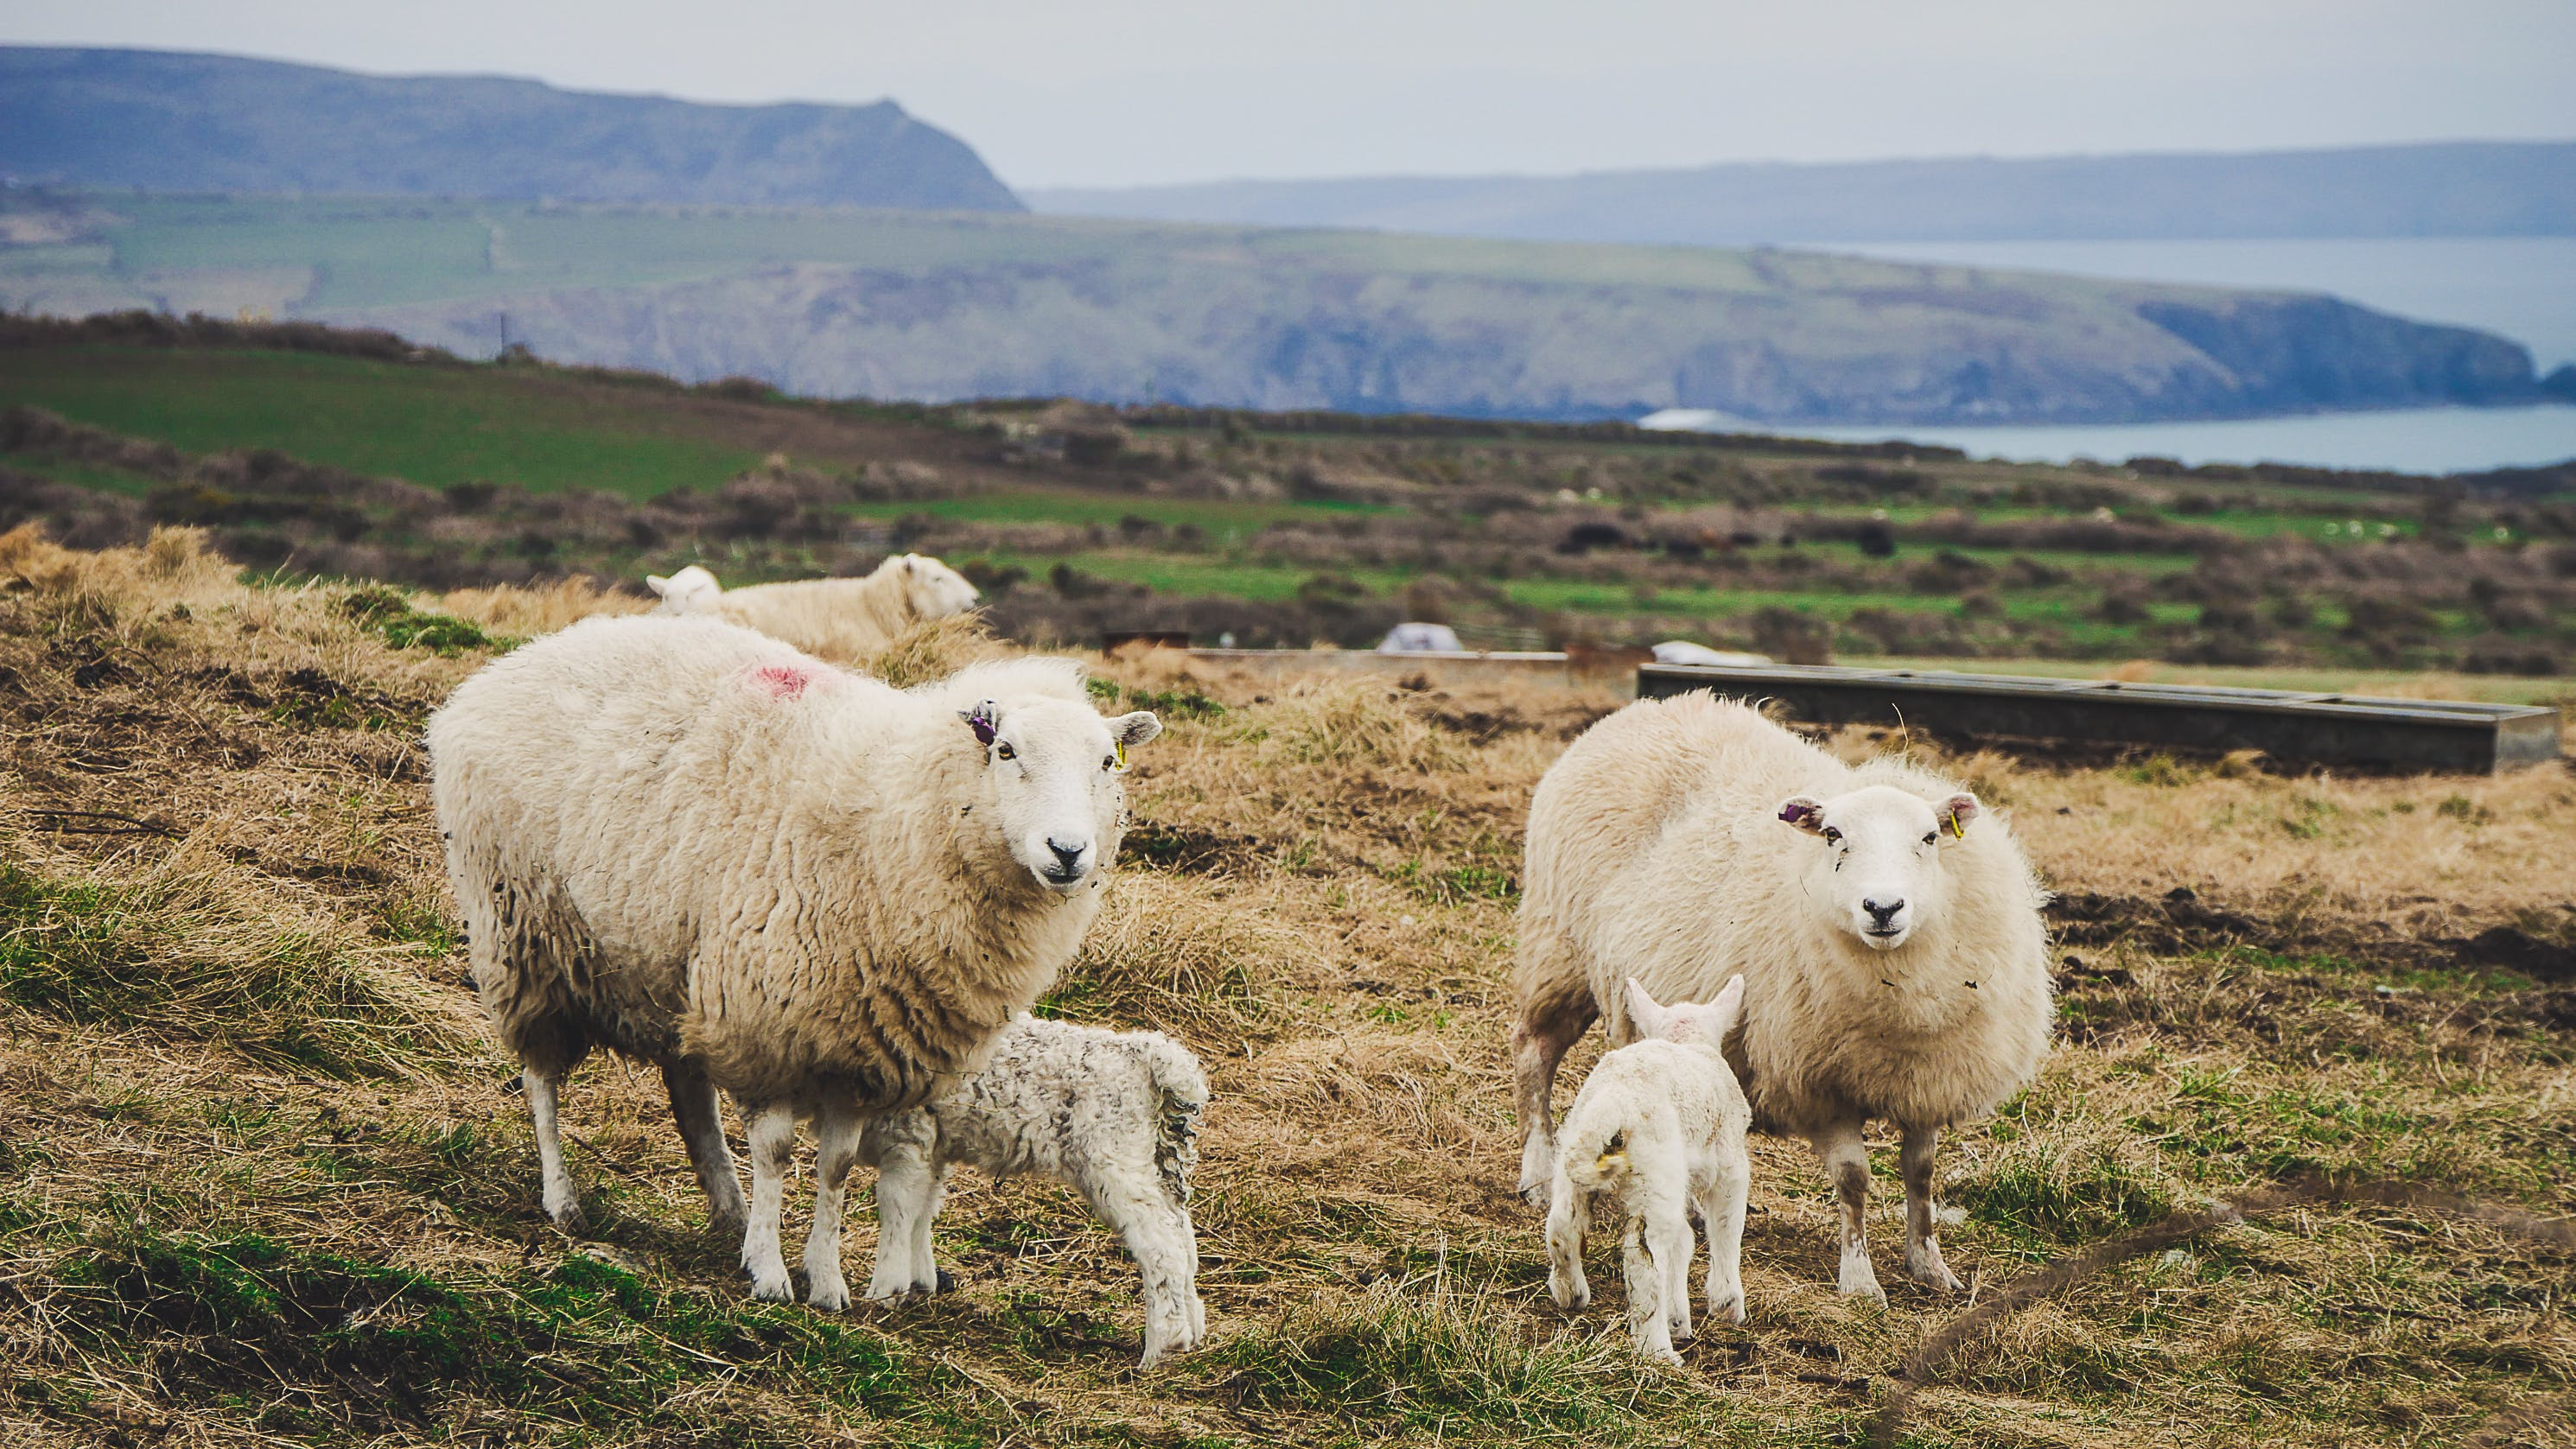 Photo of Mother Sheep and Their Lambs on a Field